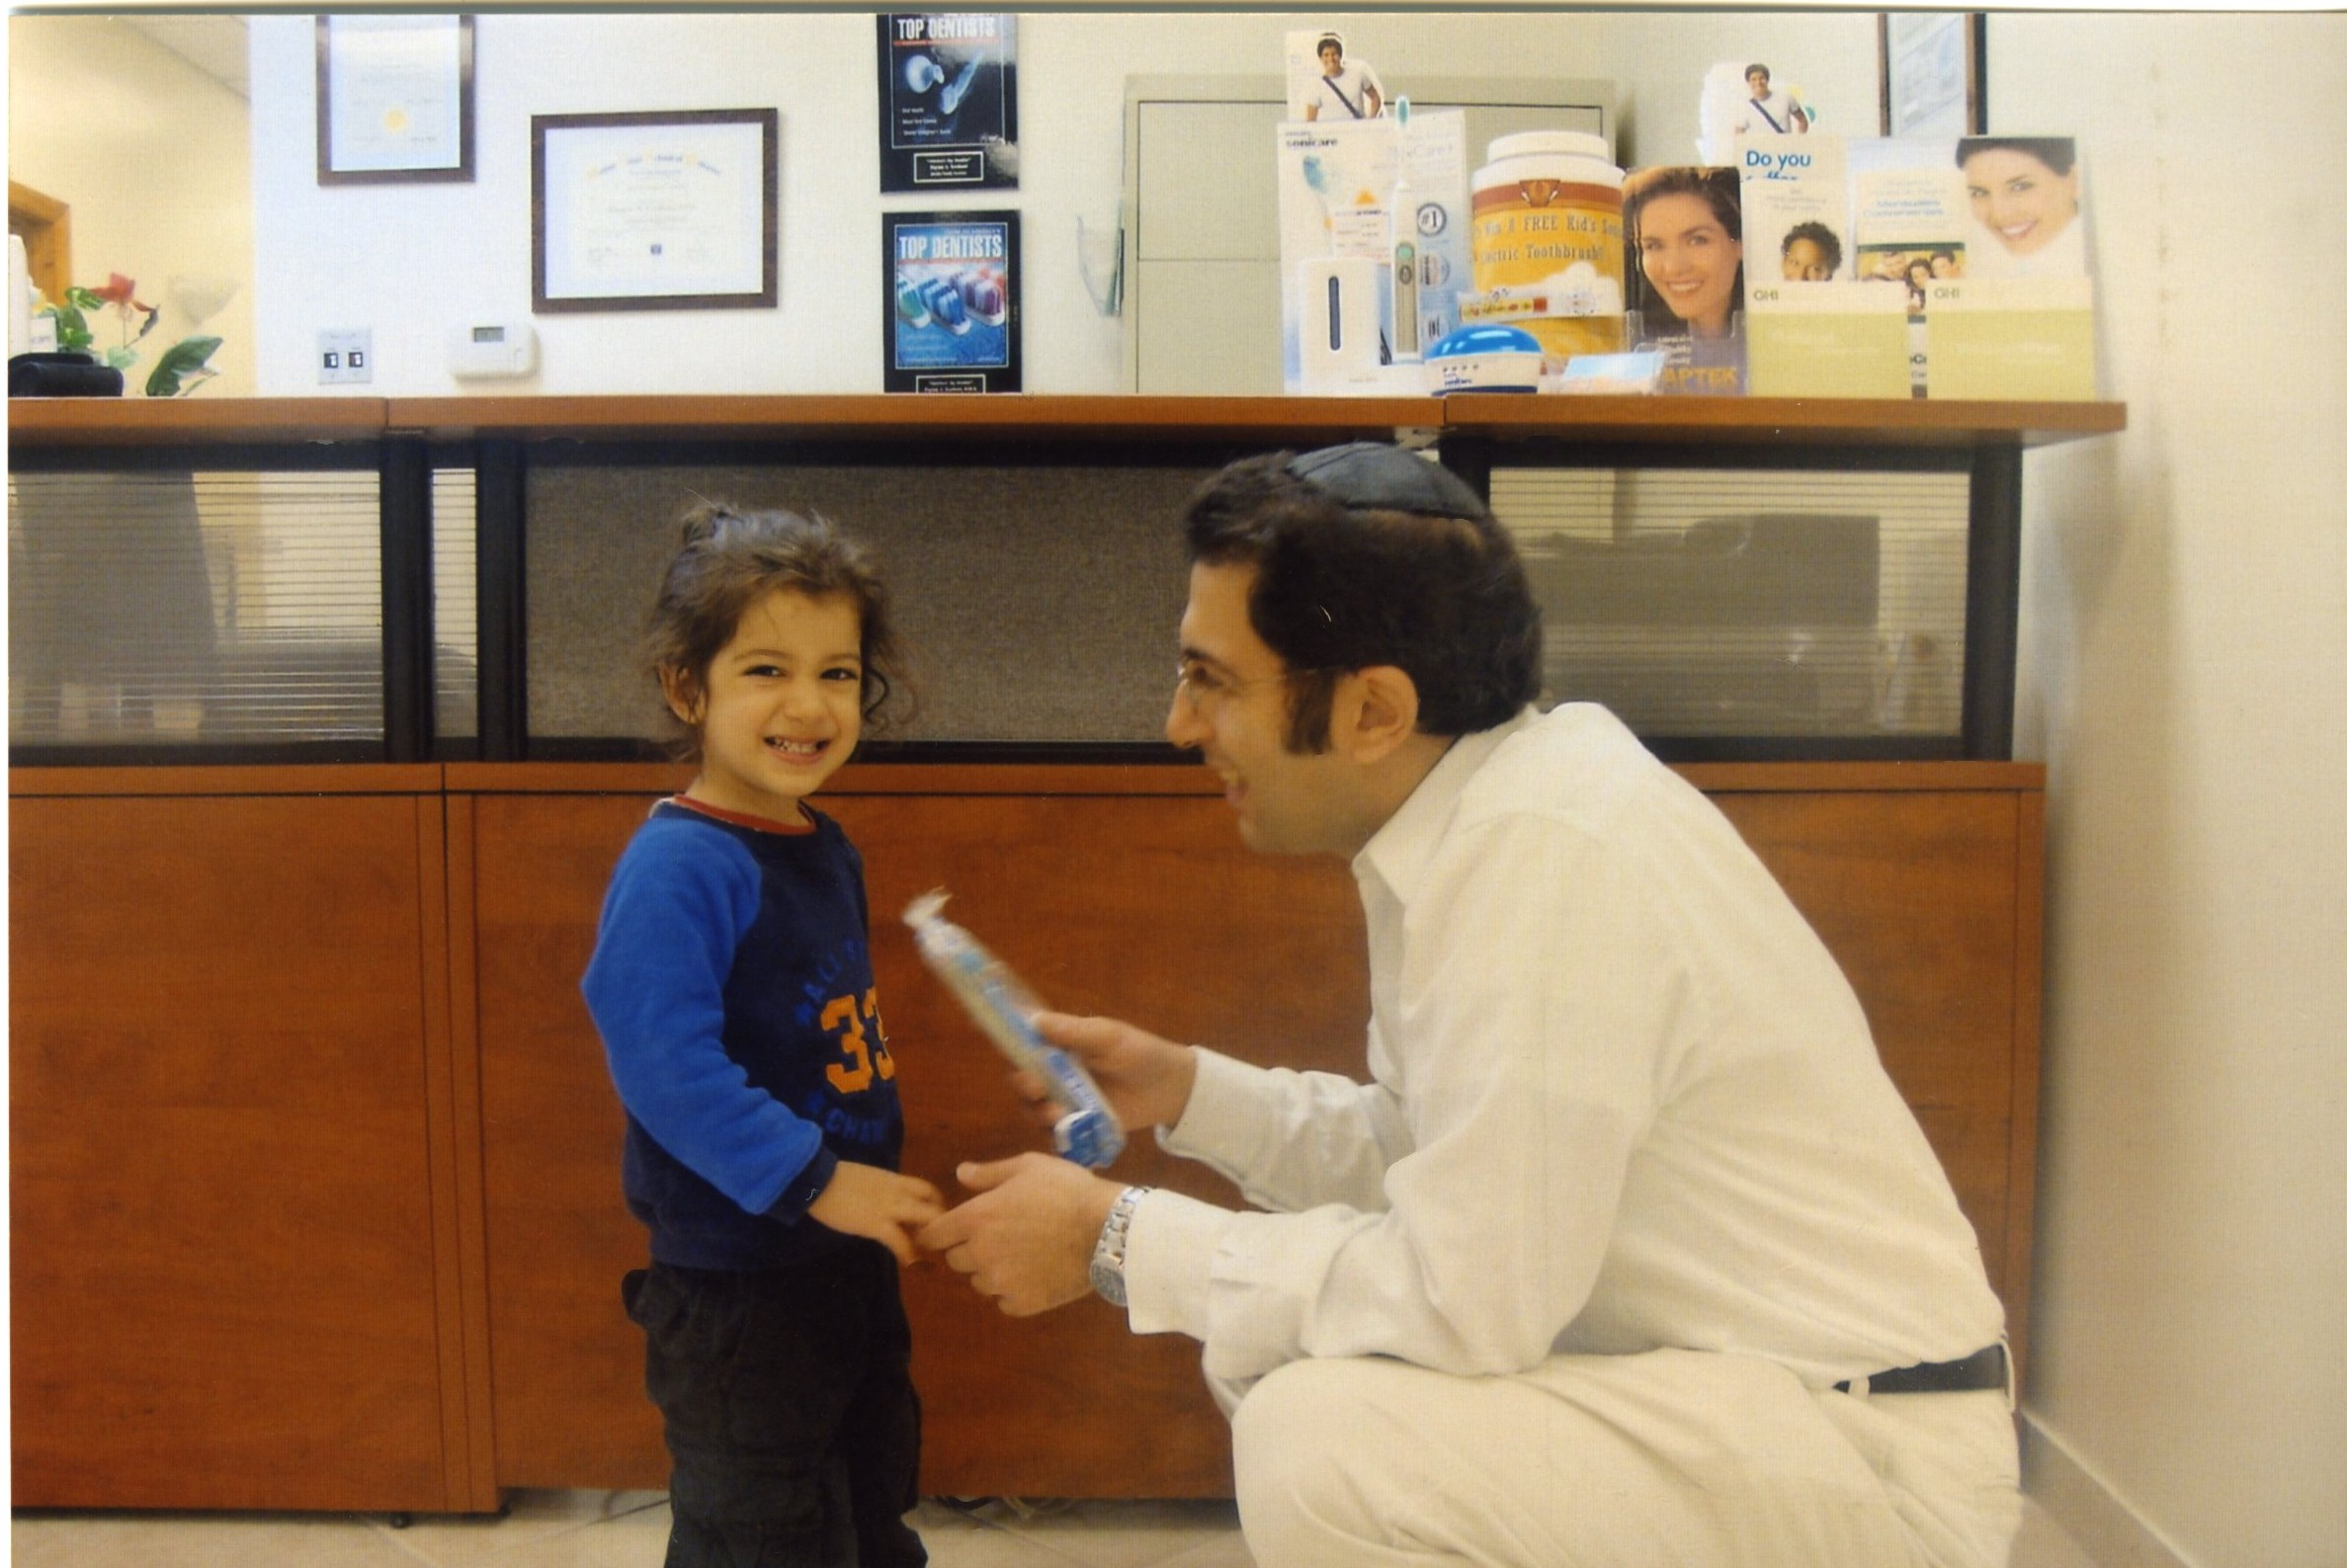 Dr Kashani Is A Graduate Of New York University Dental School Class 2000 While At Yeshiva Earned BA In Biology